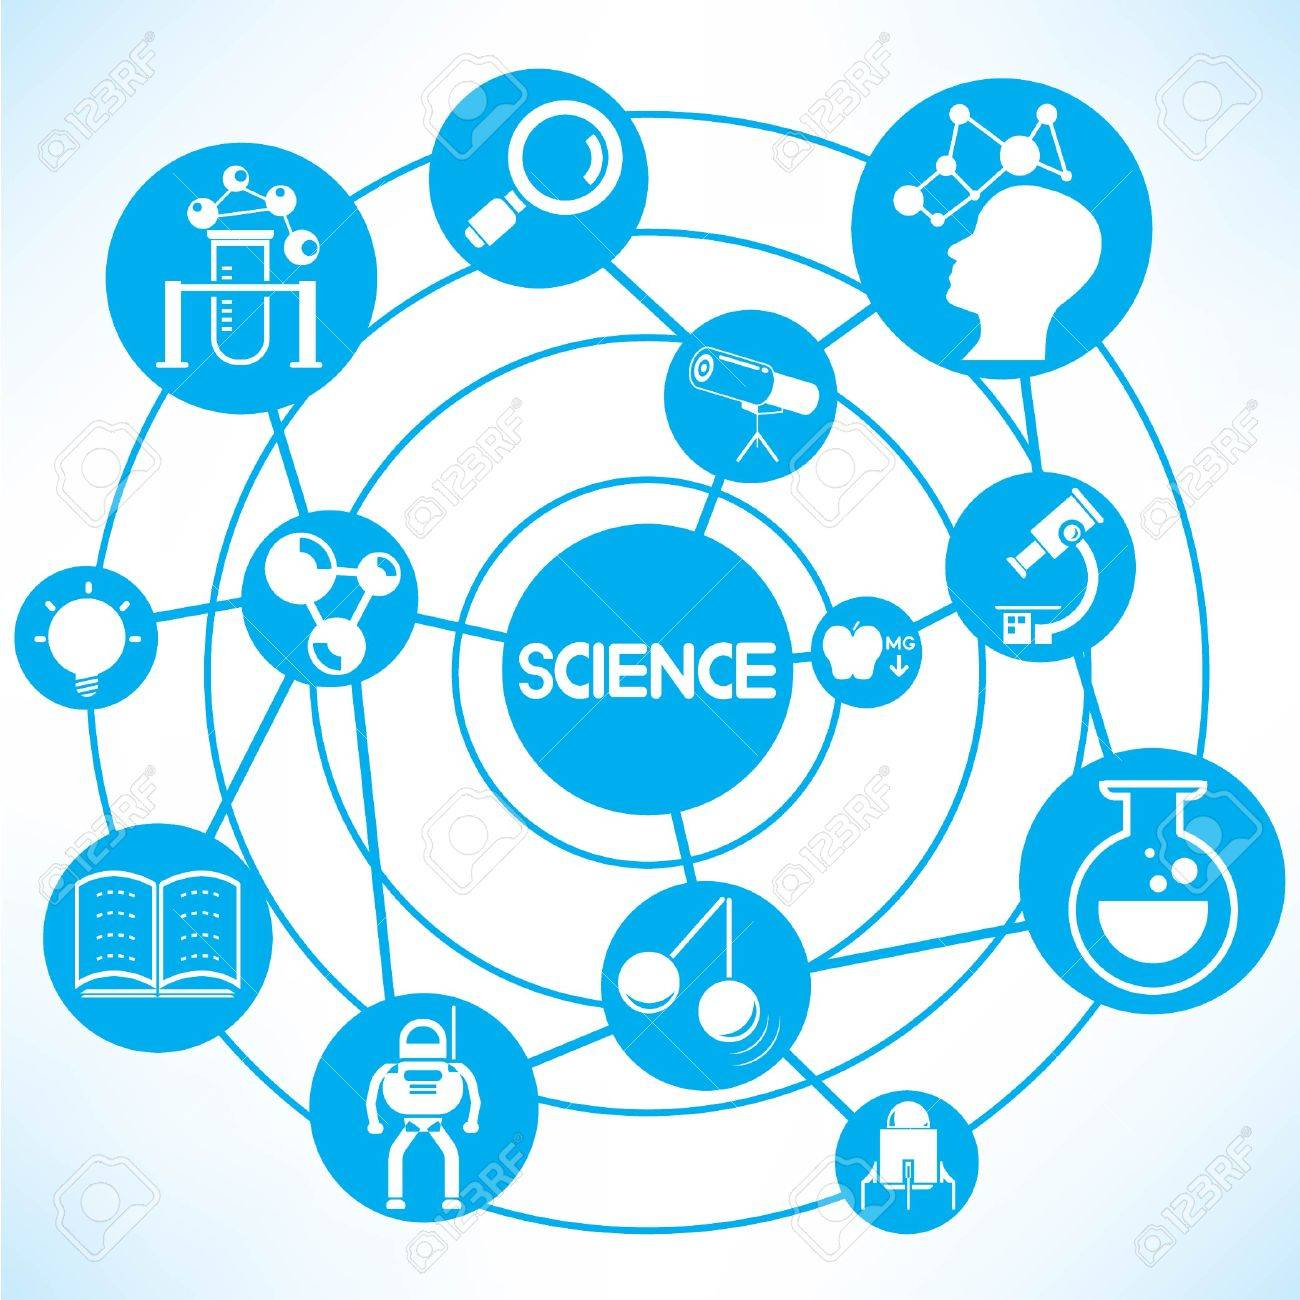 science and knowledge blue connecting network diagram royalty free Network Design Diagram Types science and knowledge blue connecting network diagram stock vector 28789366